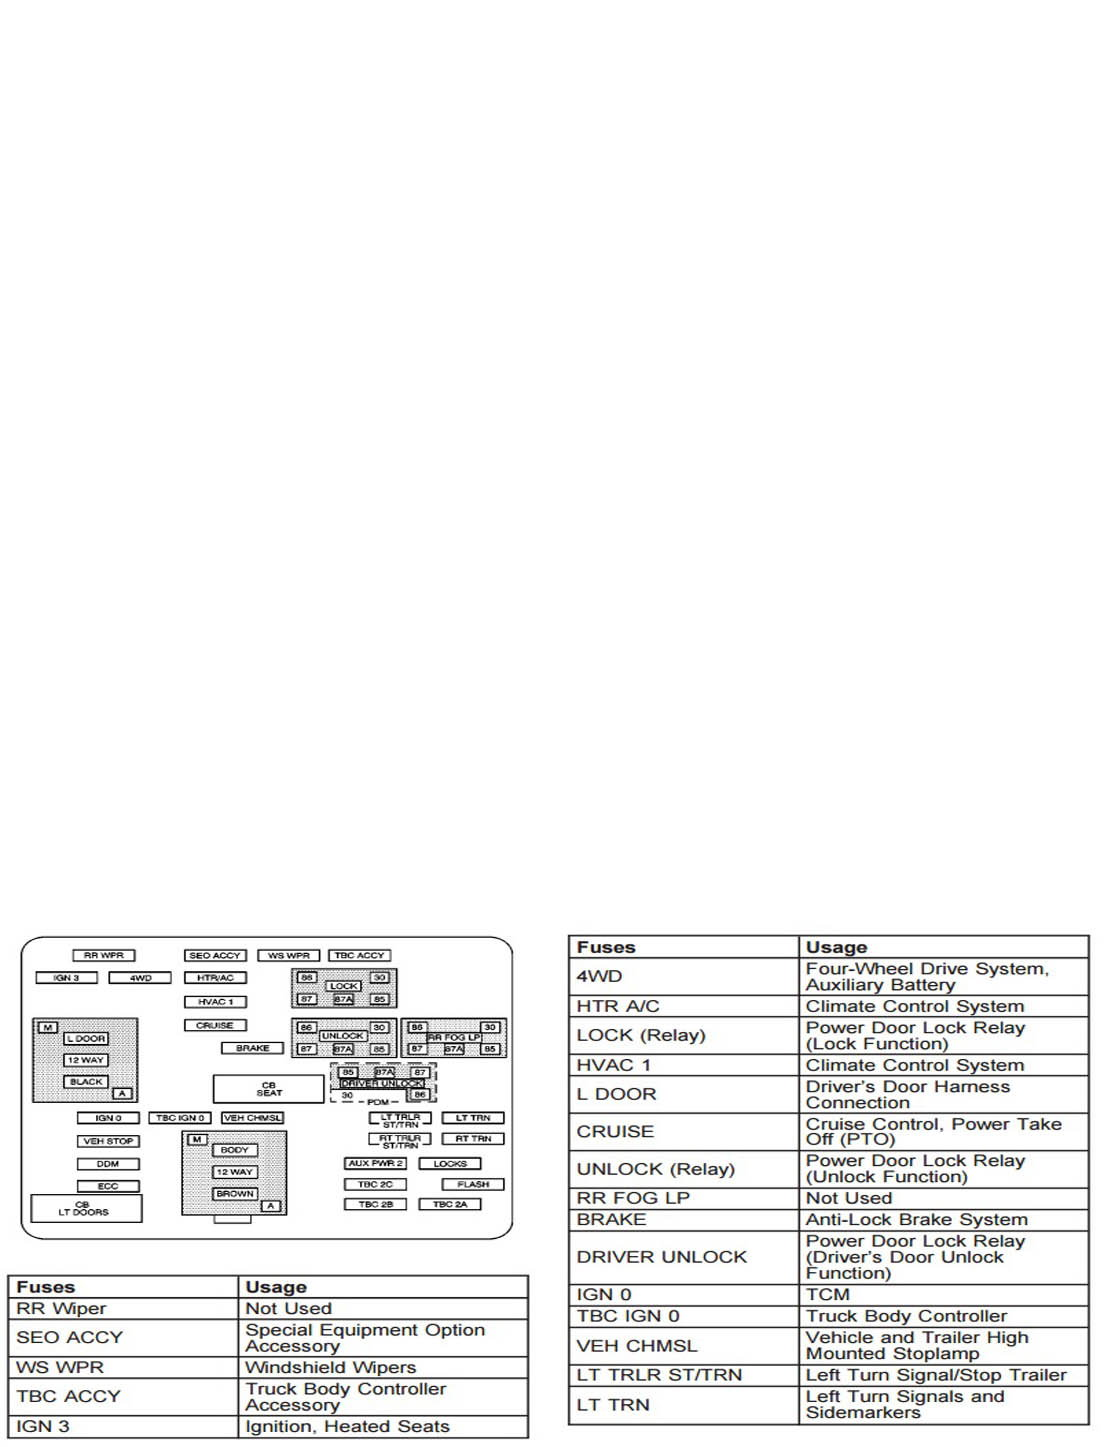 MMMay 27 Fuse Box 12 69859 chevrolet silverado gmt800 1999 2006 fuse box diagram chevroletforum  at virtualis.co